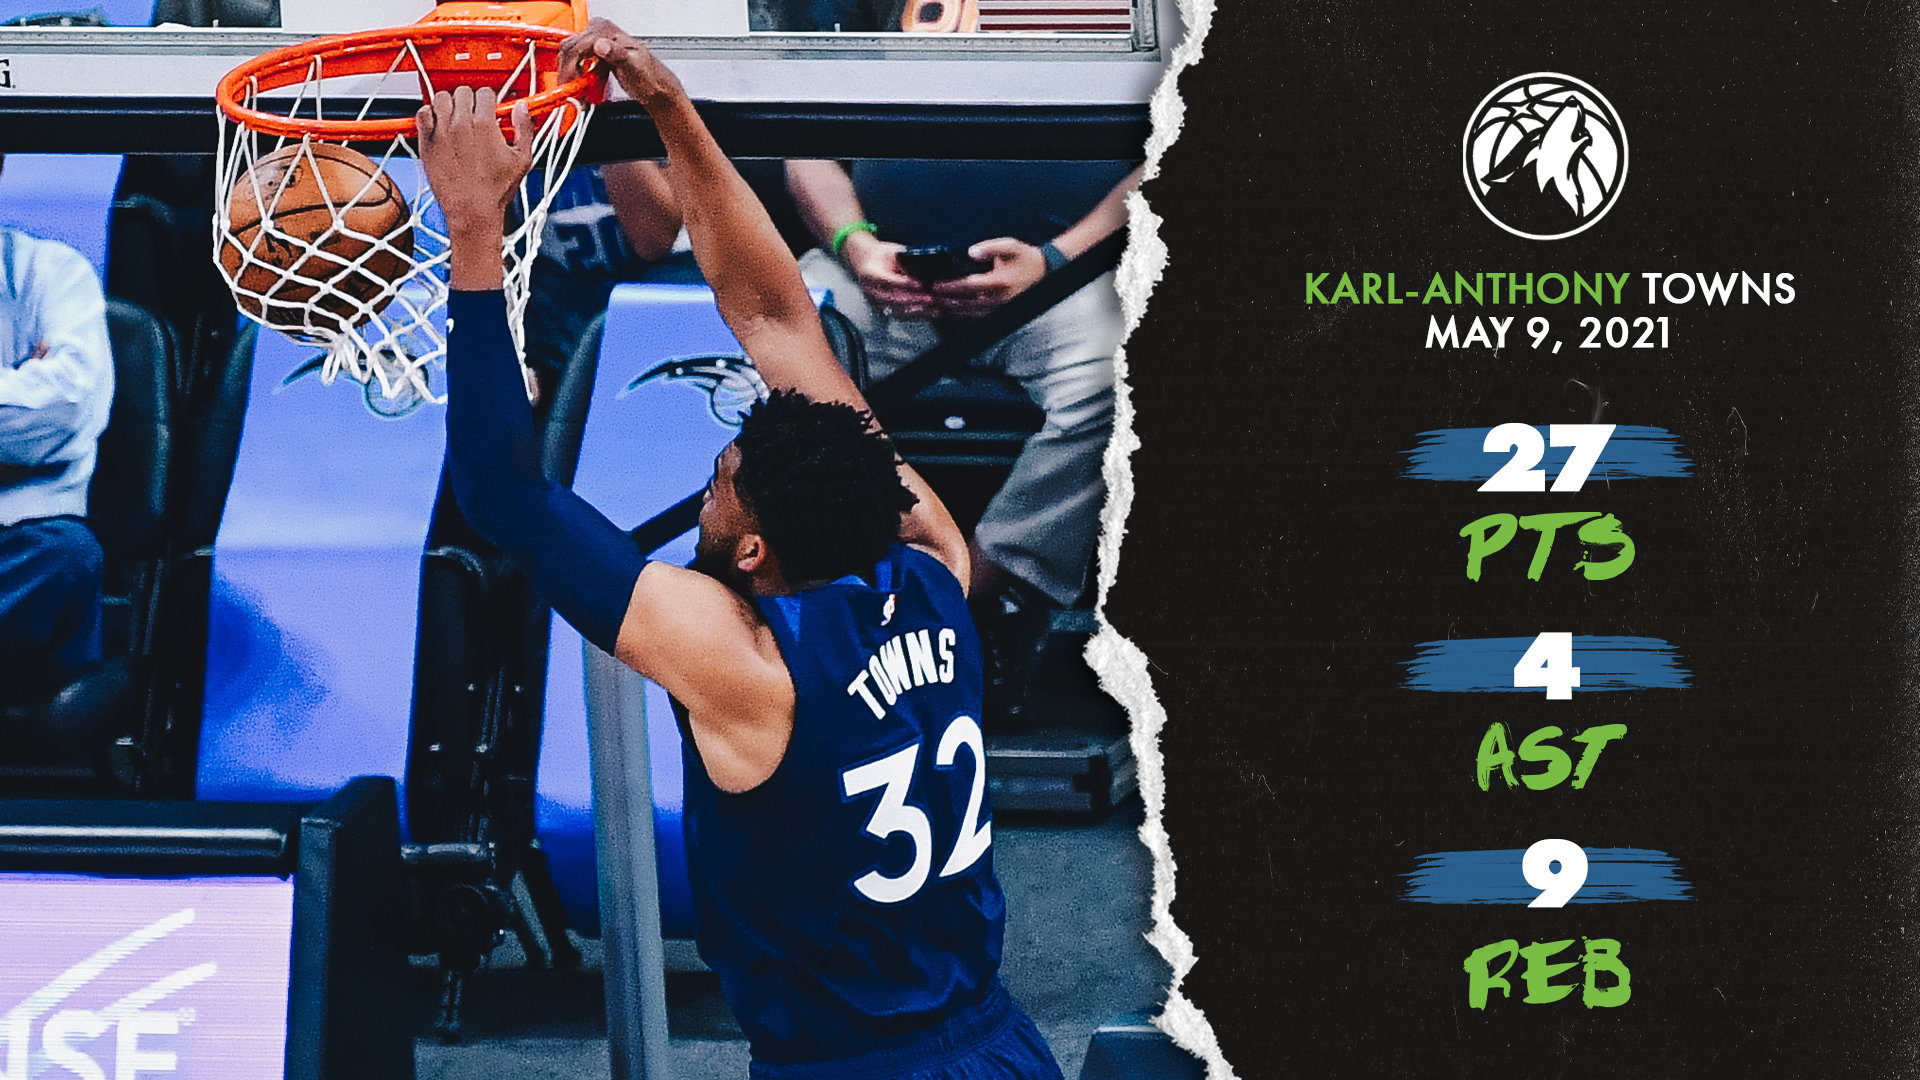 Highlights | Karl-Anthony Towns (27 pts., 9 reb., 4 ast.) vs. Magic - May 9, 2021